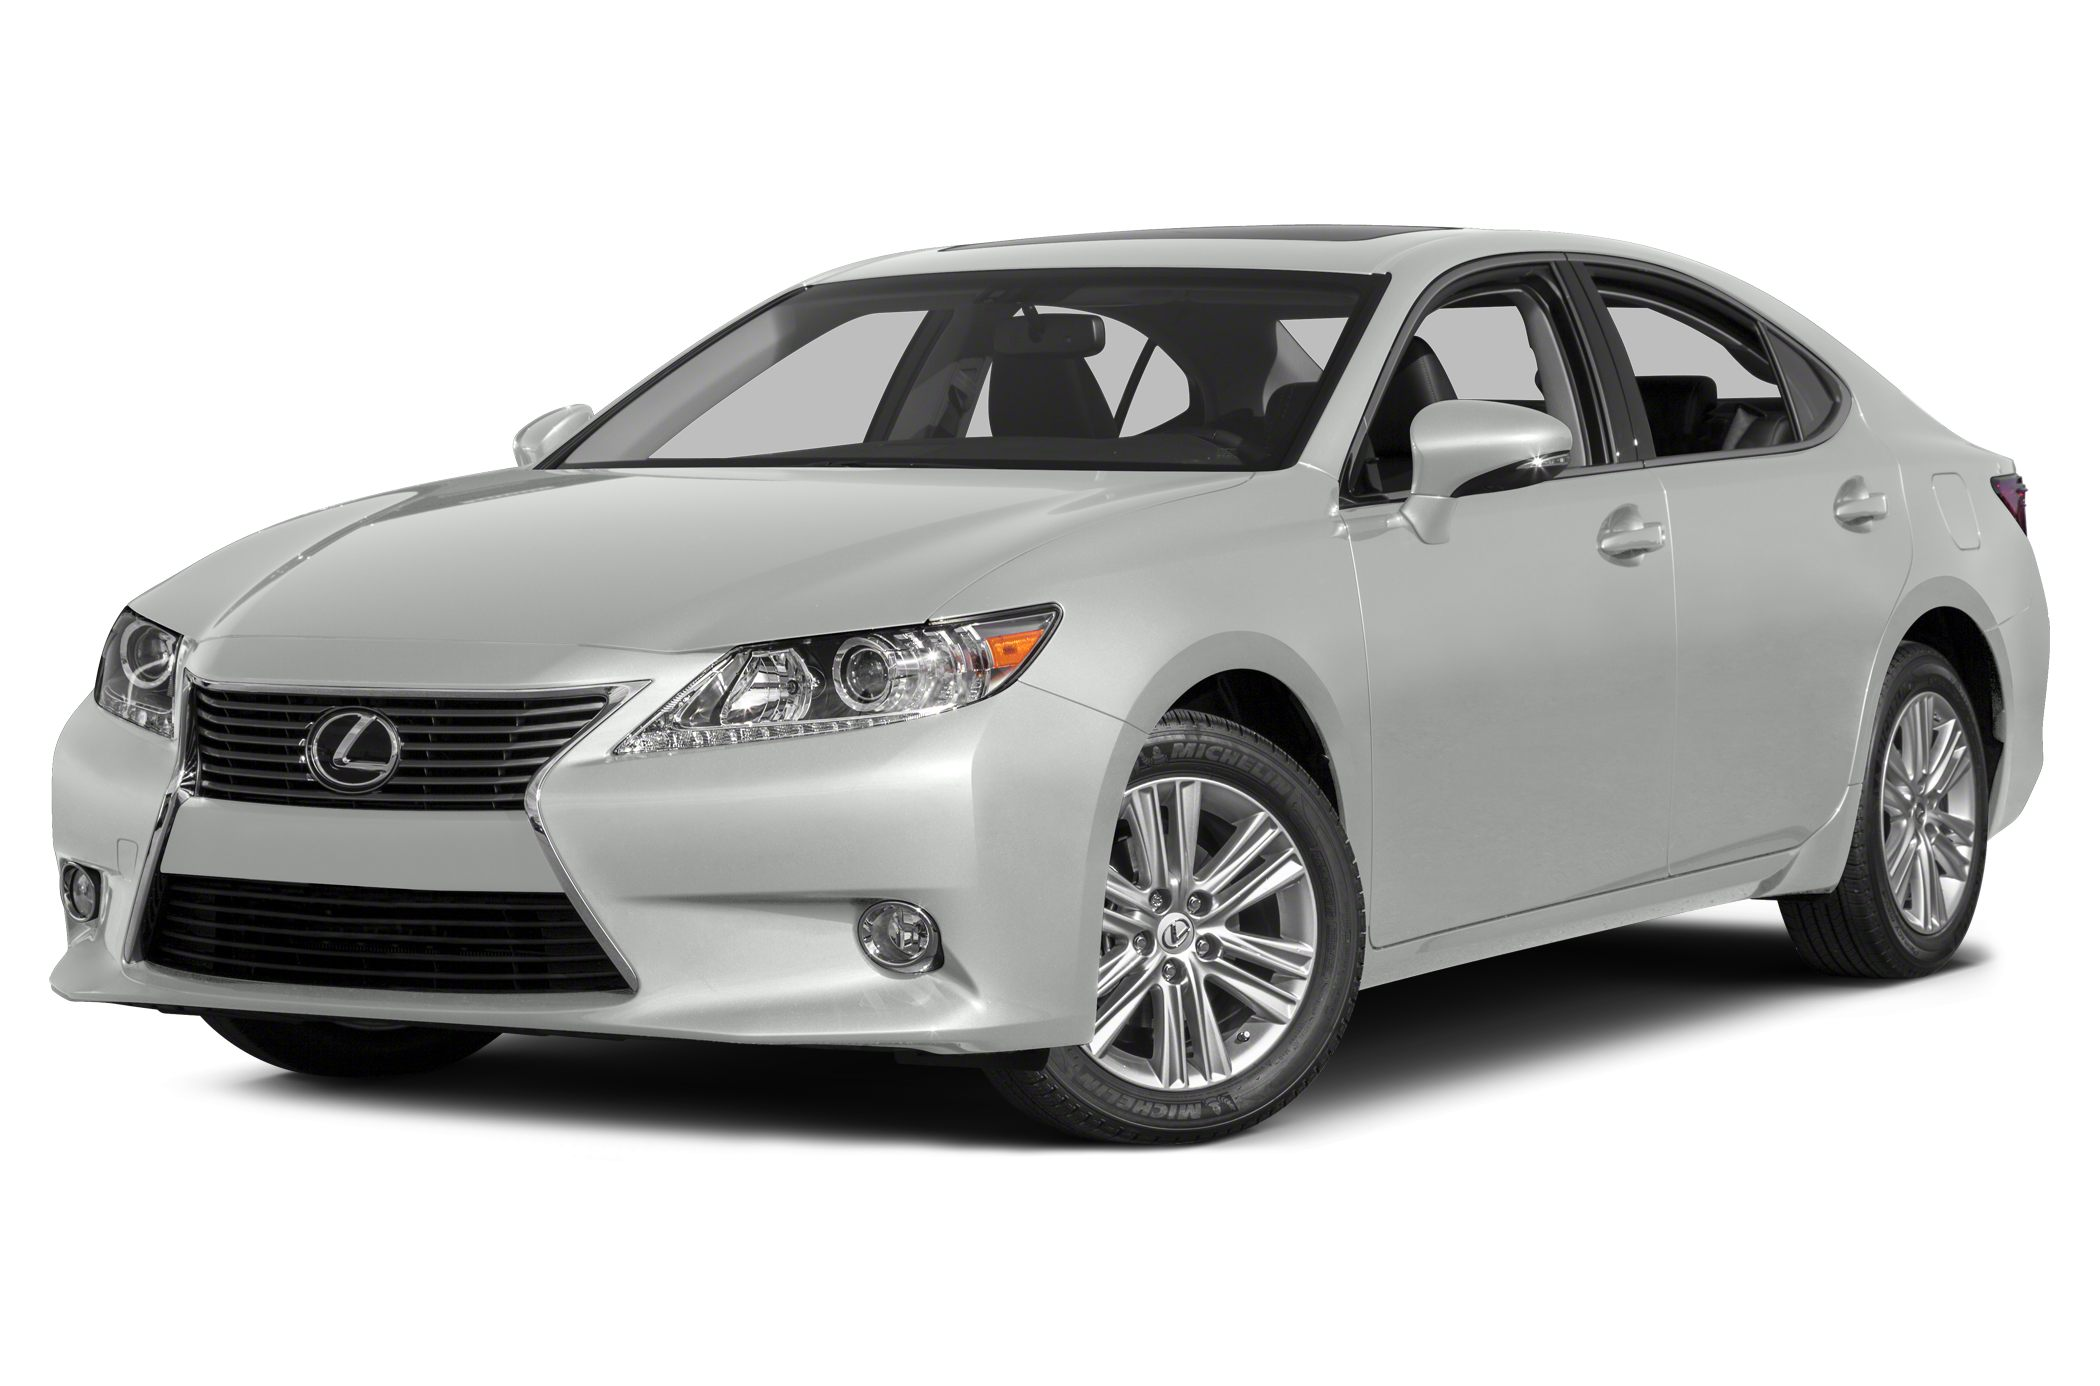 2013 Lexus ES 350 Base Sedan for sale in Greenville for $36,991 with 20,757 miles.